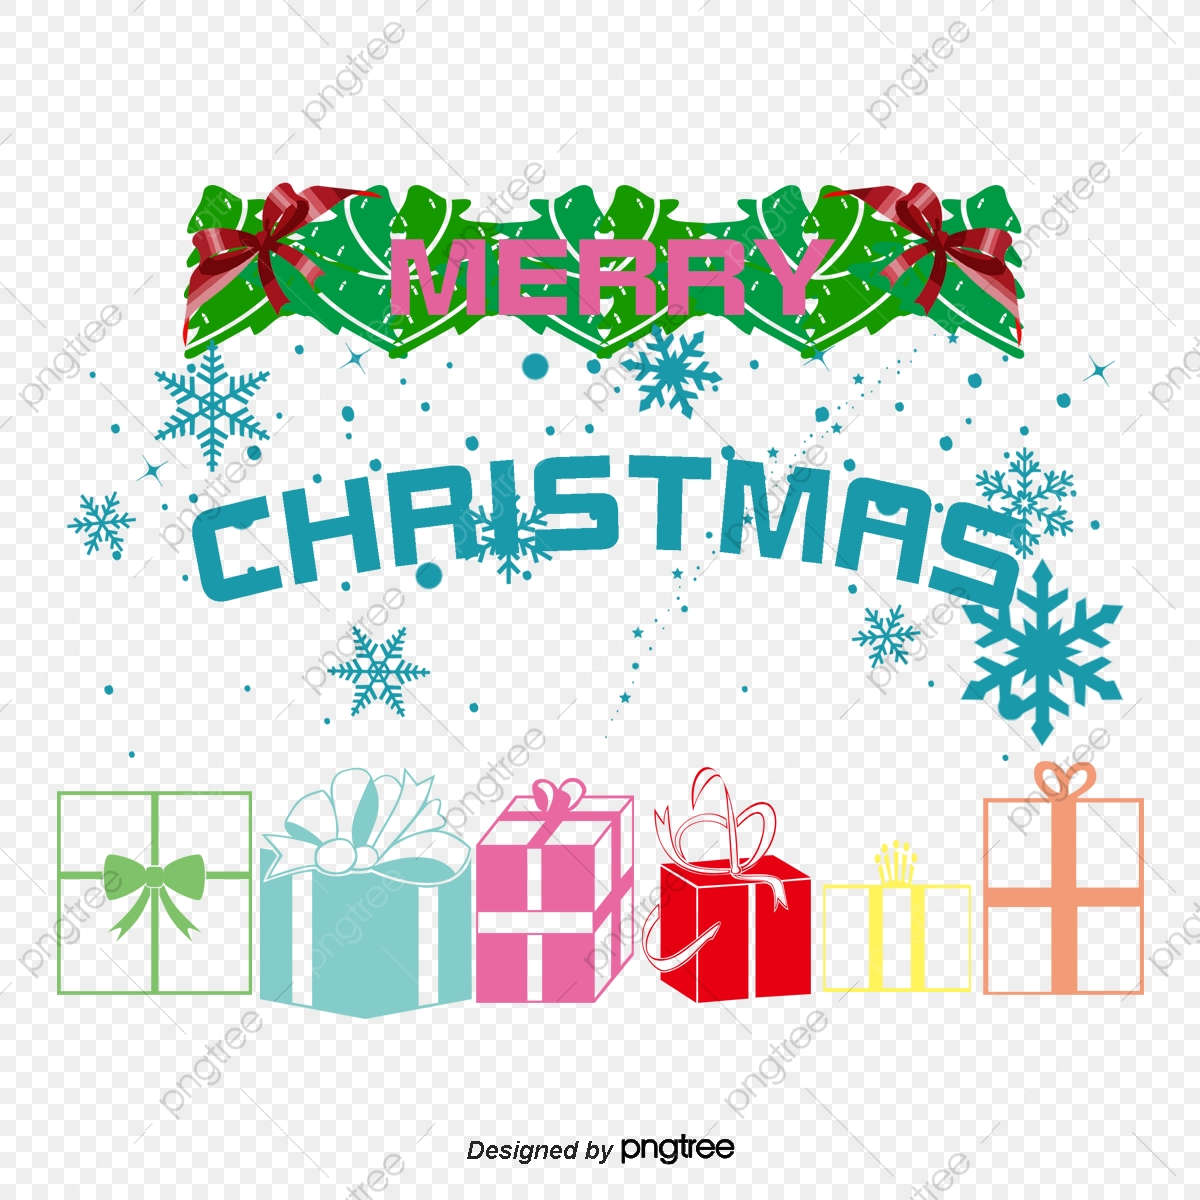 Vector Merry Christmas Gifts Christmas Vector Merry Christmas Gift Png Transparent Clipart Image And Psd File For Free Download